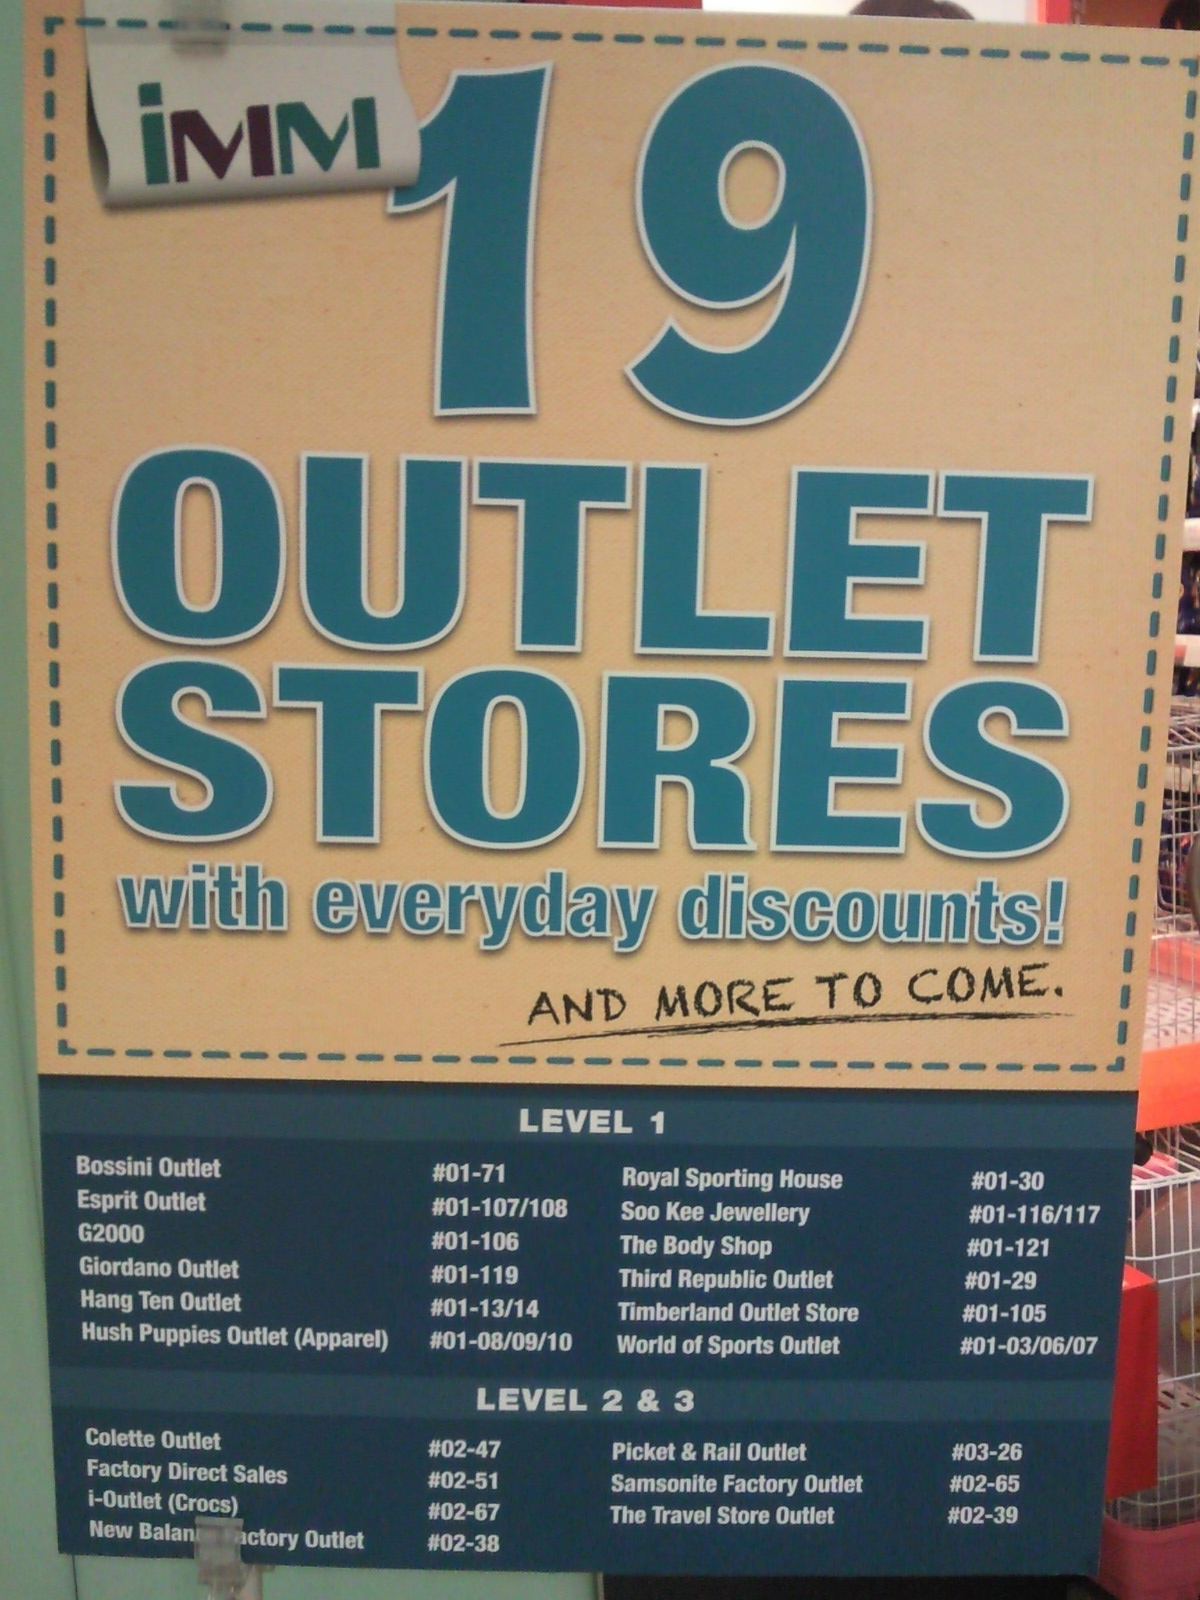 043f32b8b6517 Flyers Advertising  IMM 19 Outlet Stores With Everyday Discounts in ...